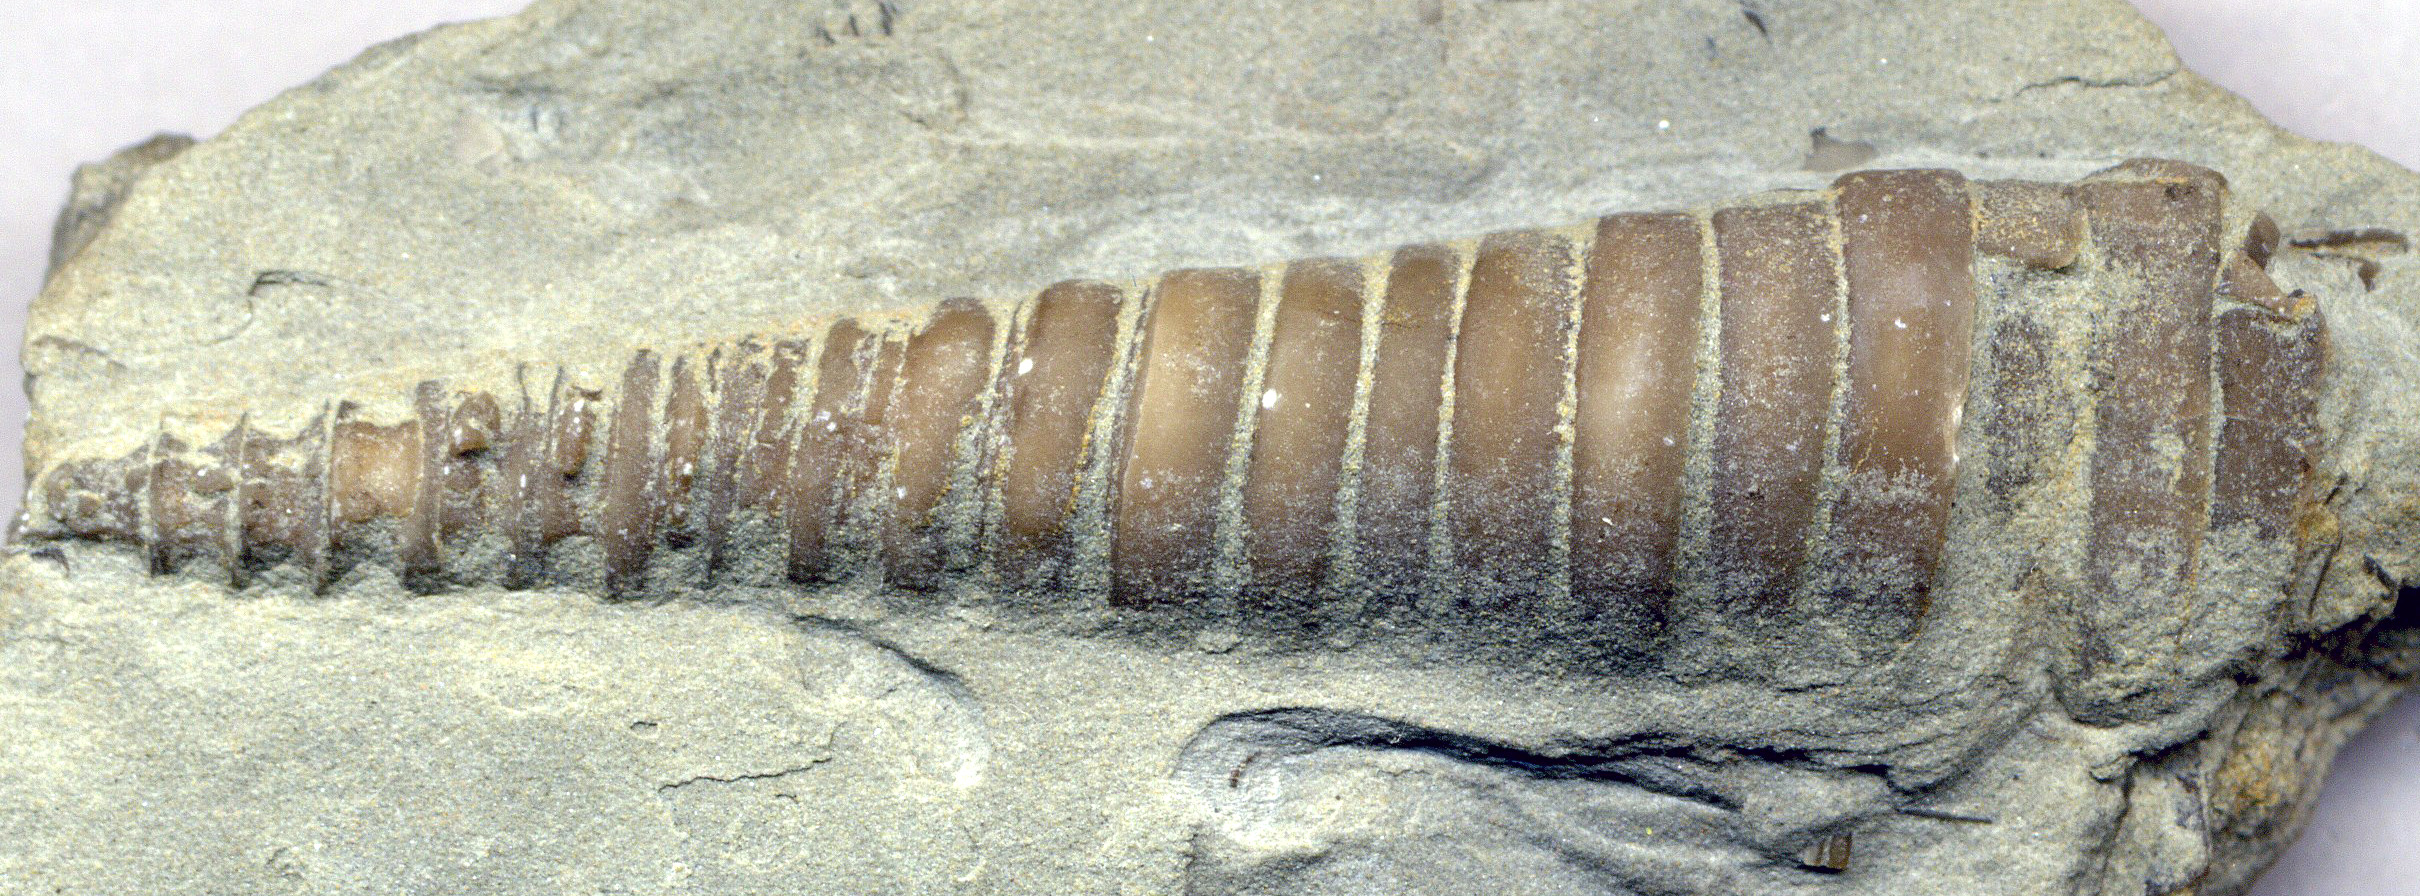 fossil dating wiki Absolute dating is the process of determining an age on a specified chronology  in archaeology  amino acid racemization dating of fossil bones annual.